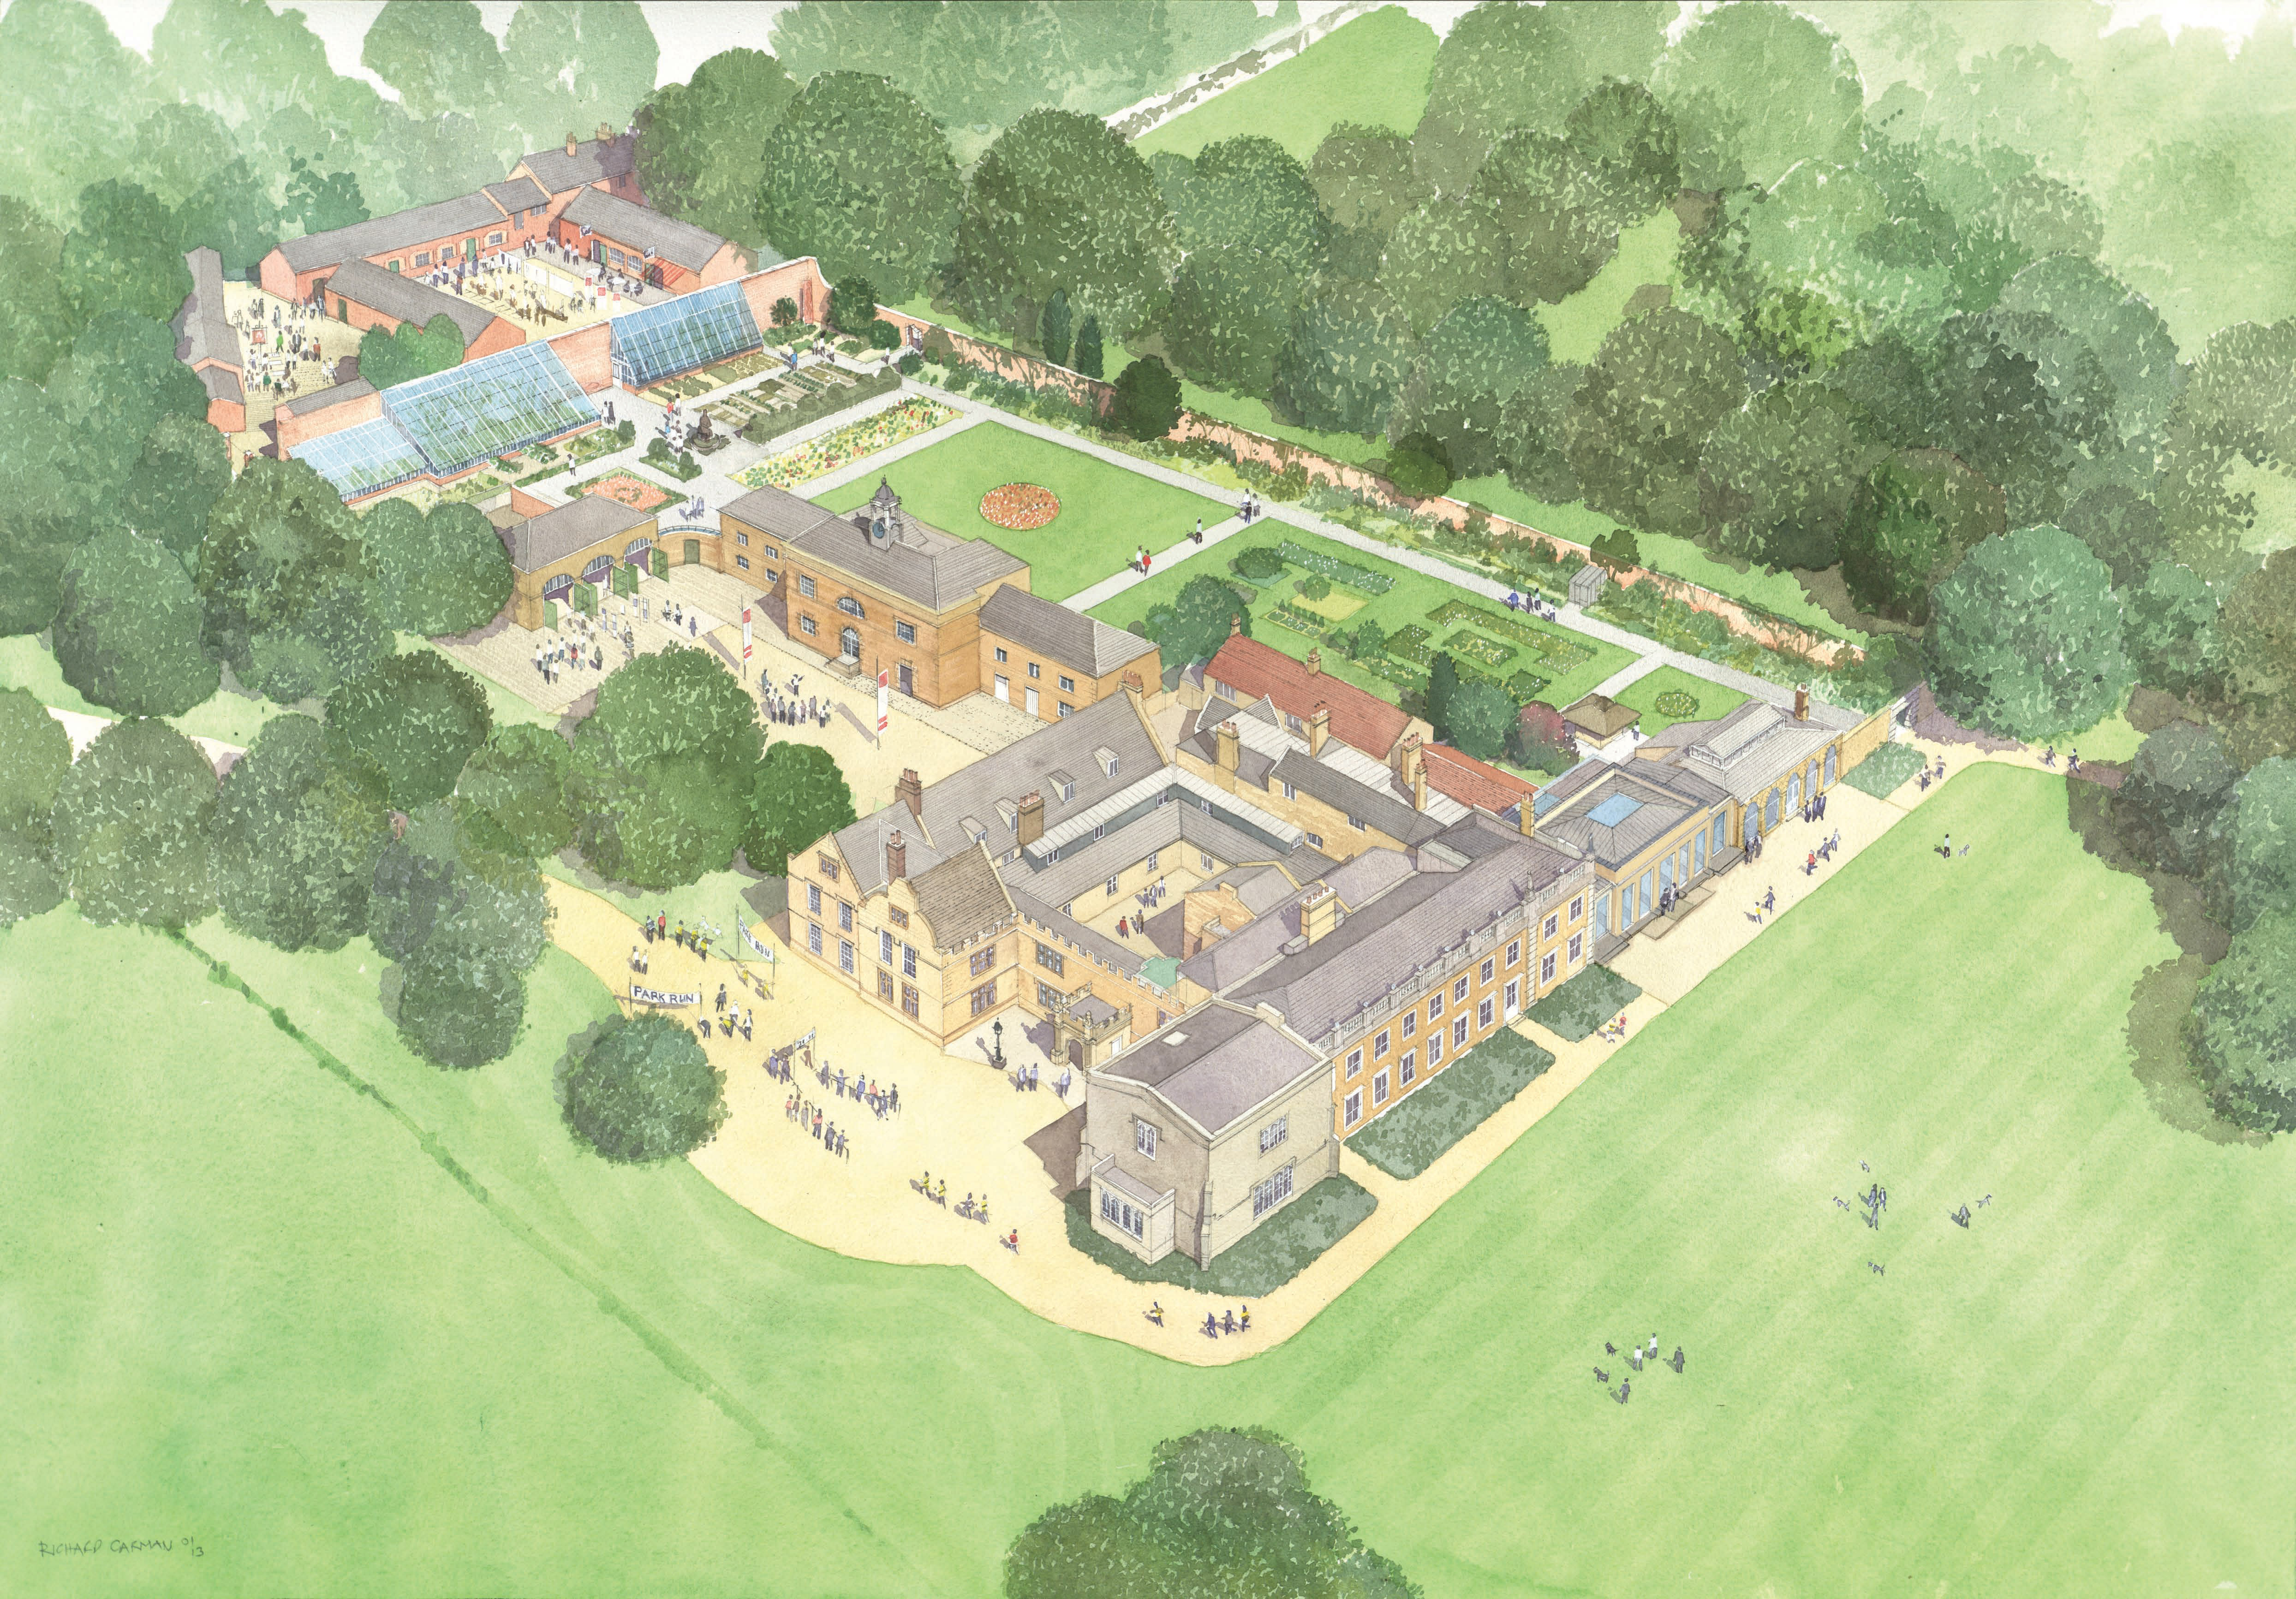 Artist's impression of proposed changes